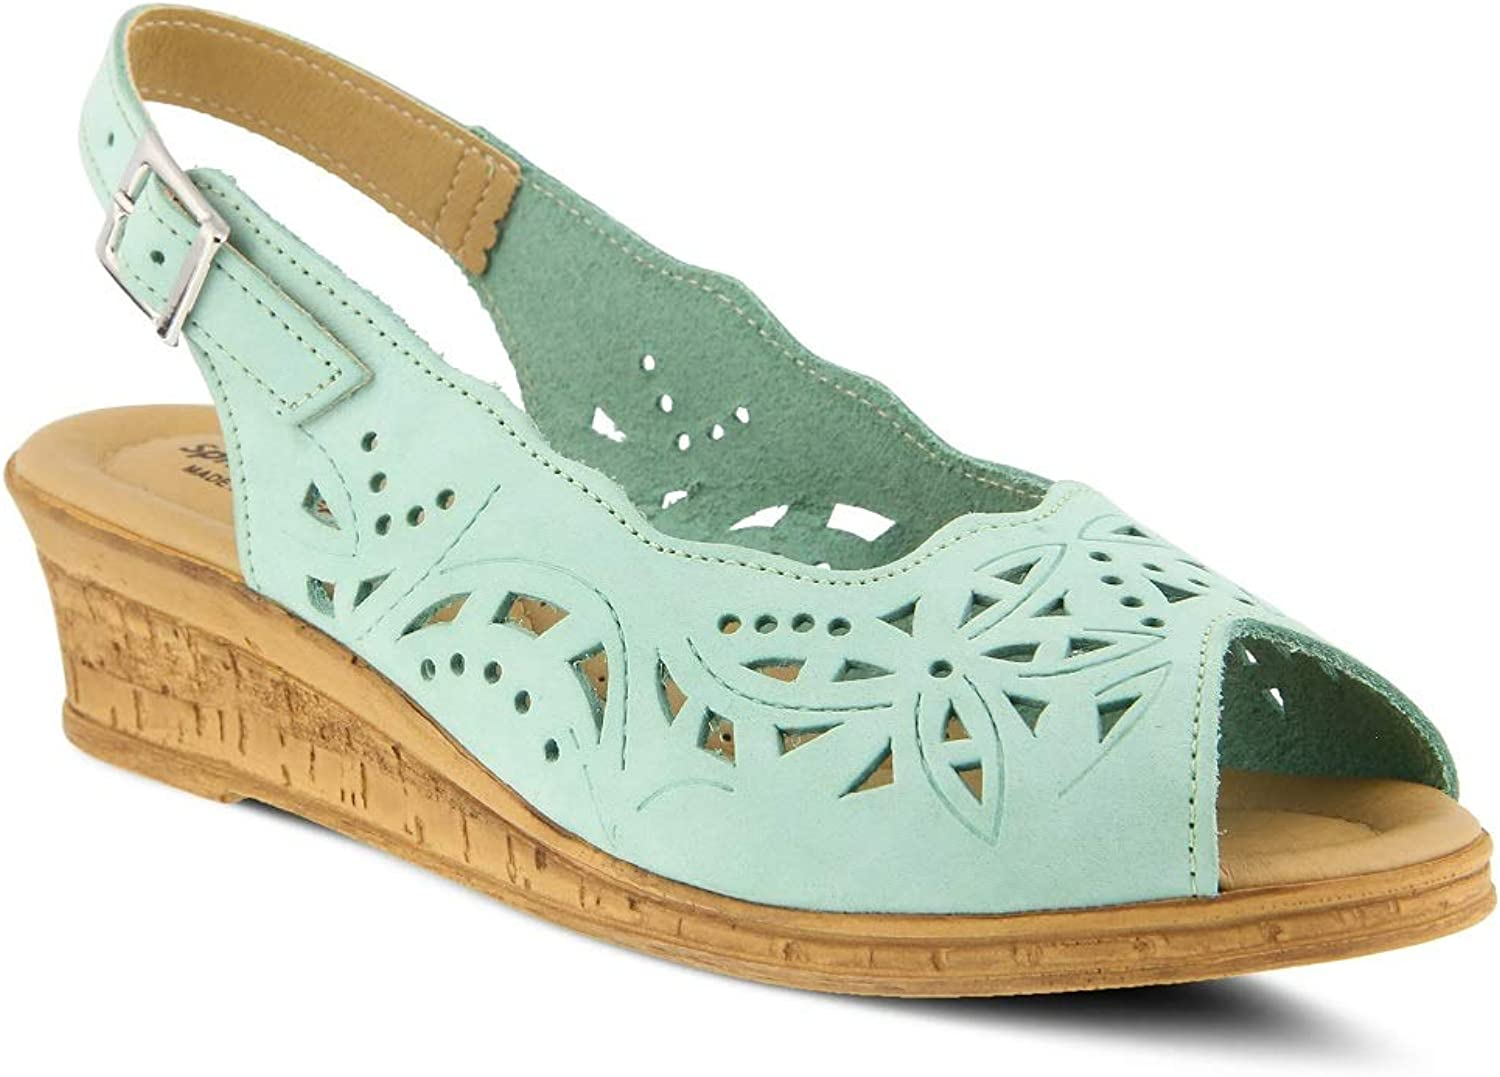 Spring Step Women's Orella Sandals   color Mint Green  Leather Sandals